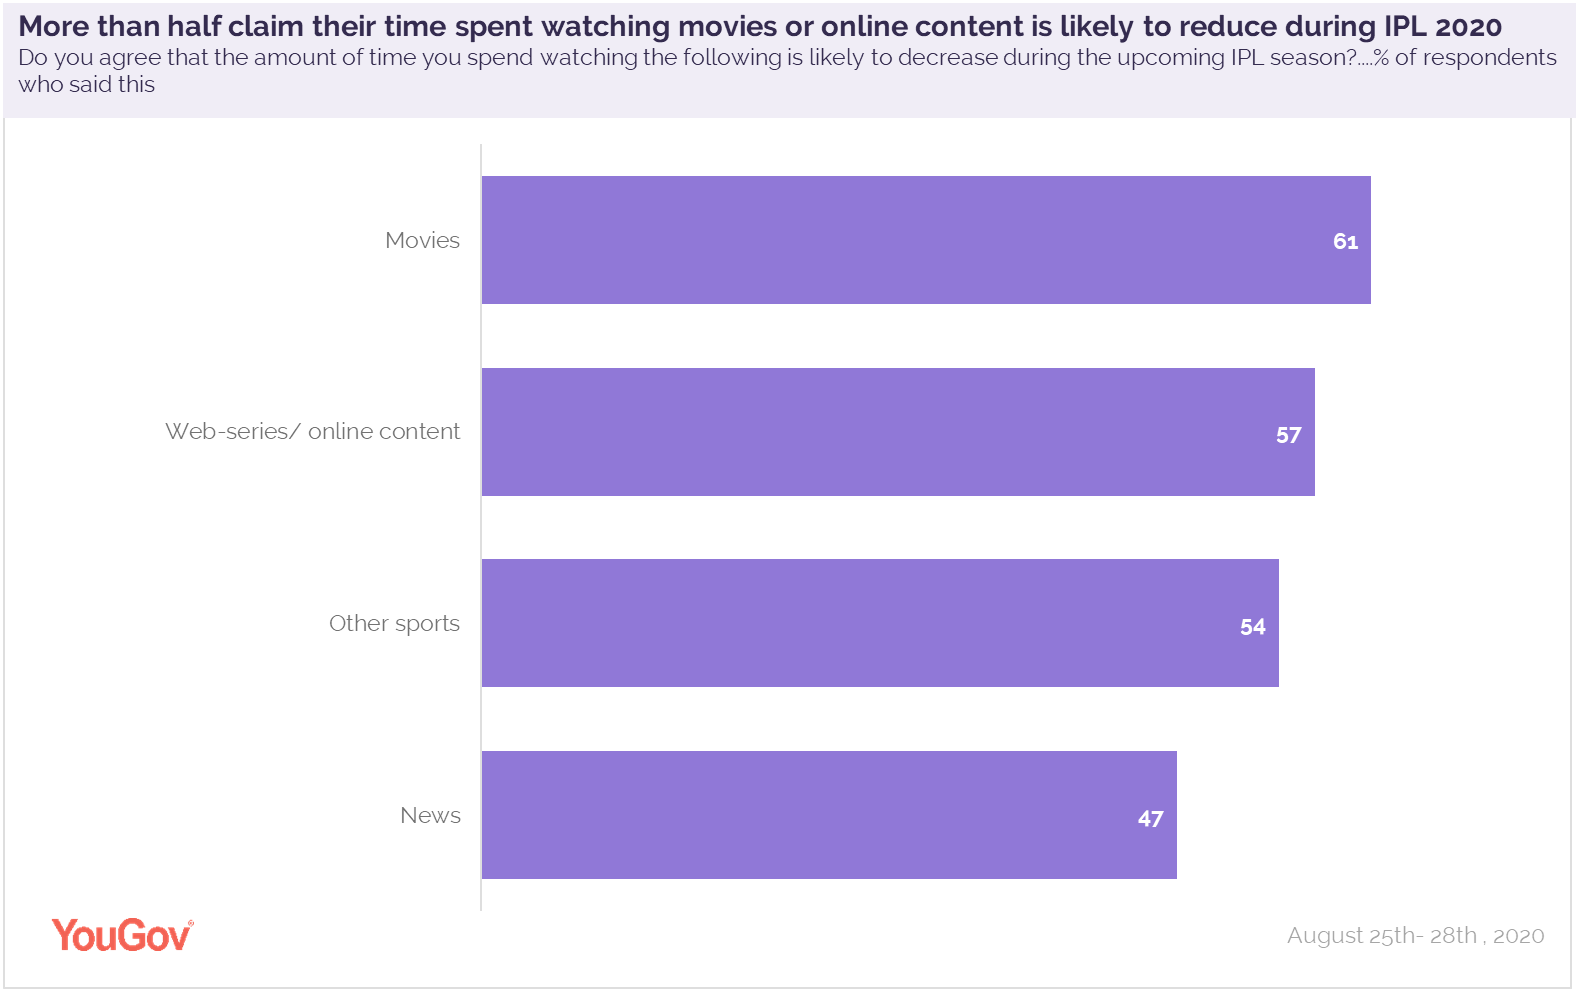 chart2_time_spent_on_watching_other_content_reduces